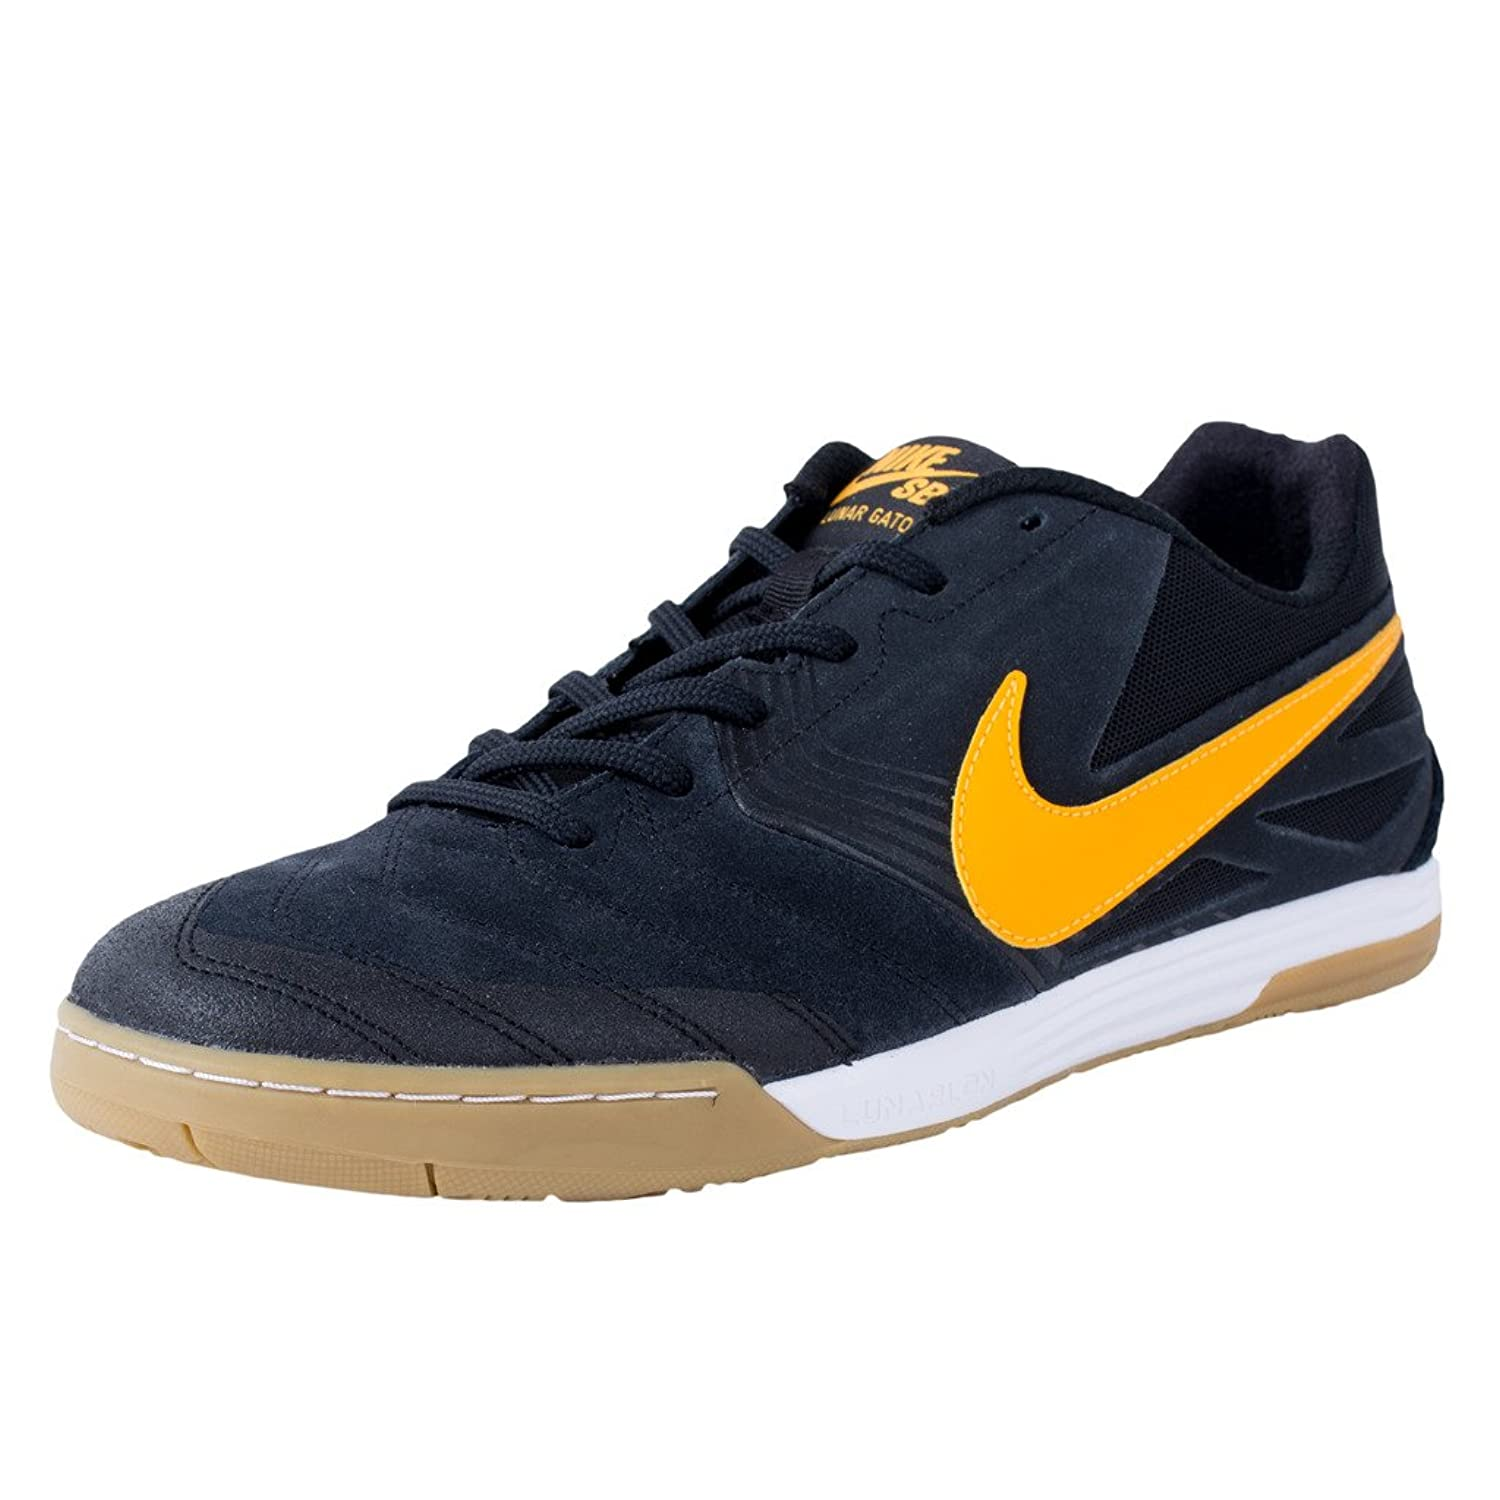 Images for Nike SB Lunar Gato Black / University Gold Gum / Light Brown Skate  Shoes-13